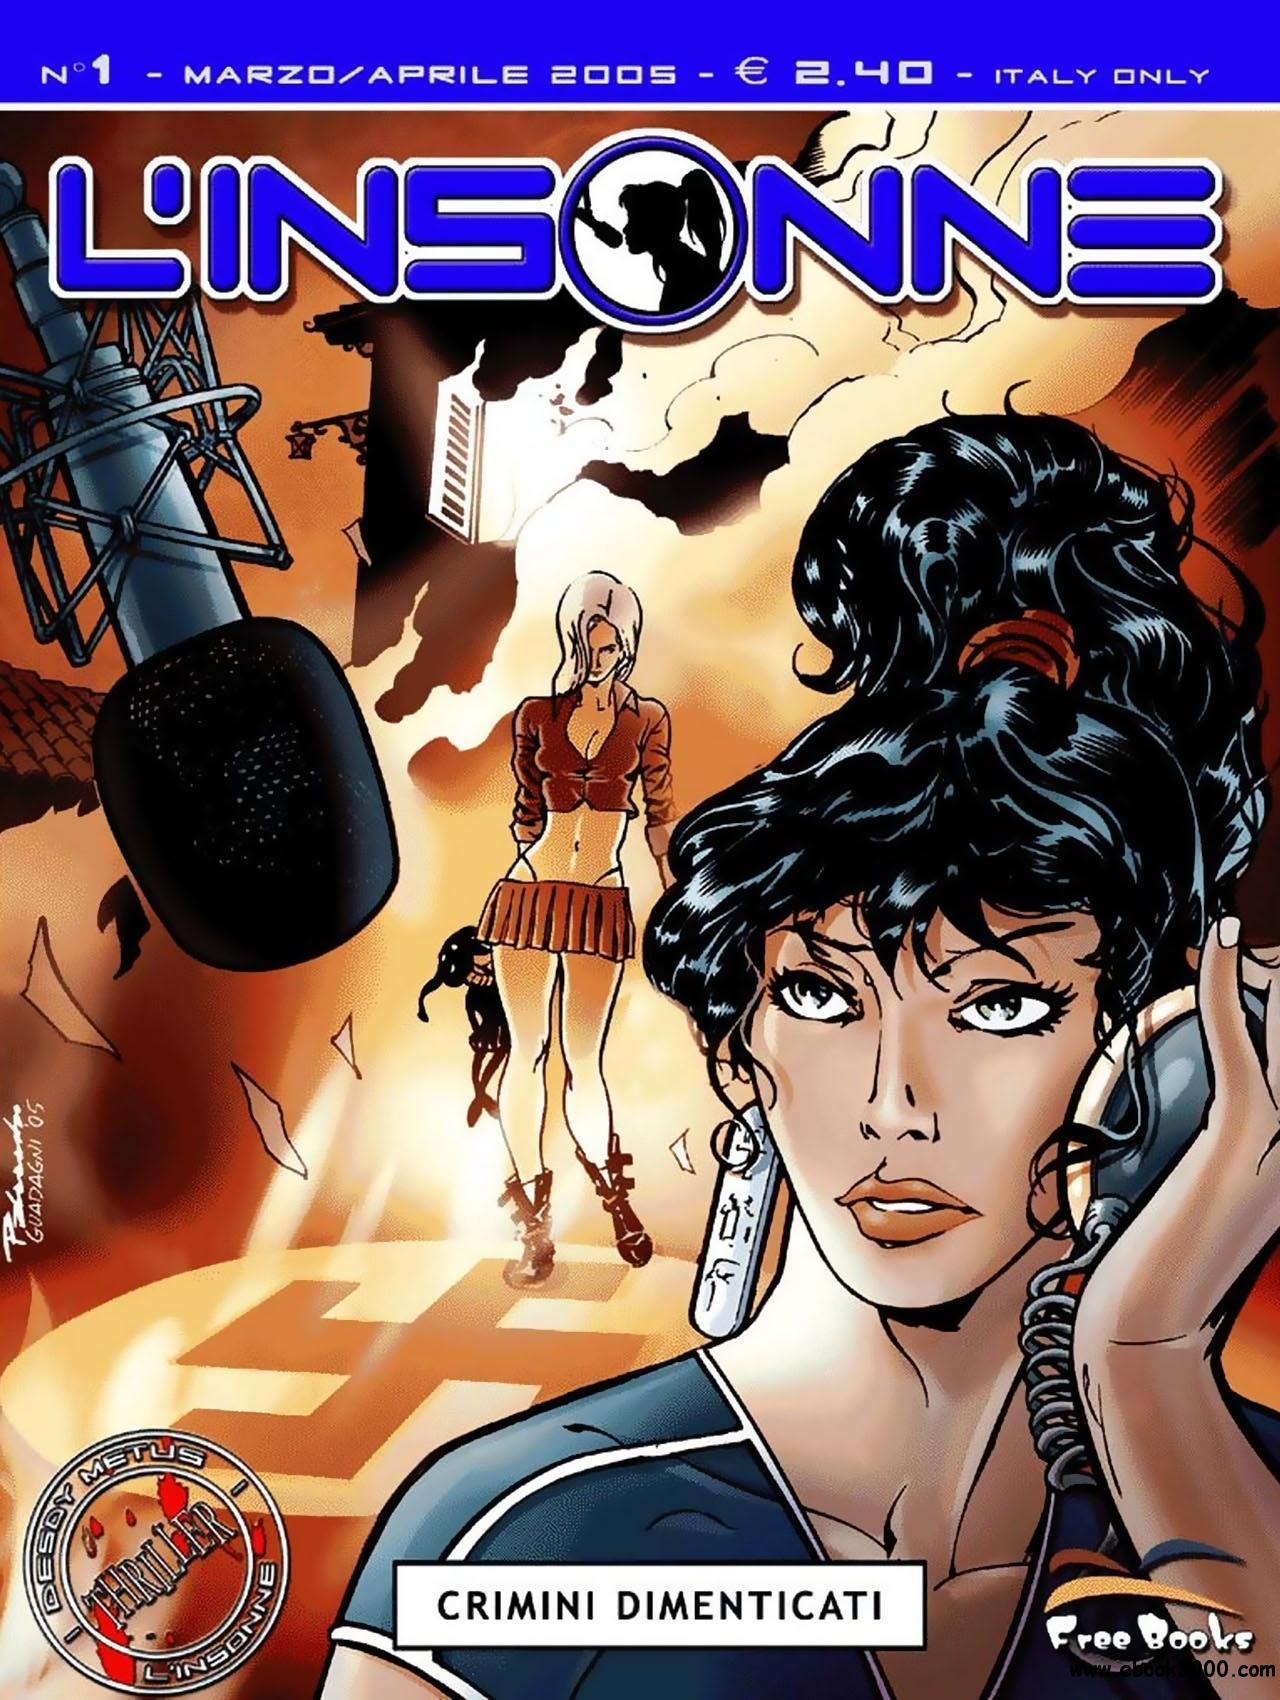 L'Insonne - Volume 1 - Crimini Dimenticati (Seconda Serie) free download